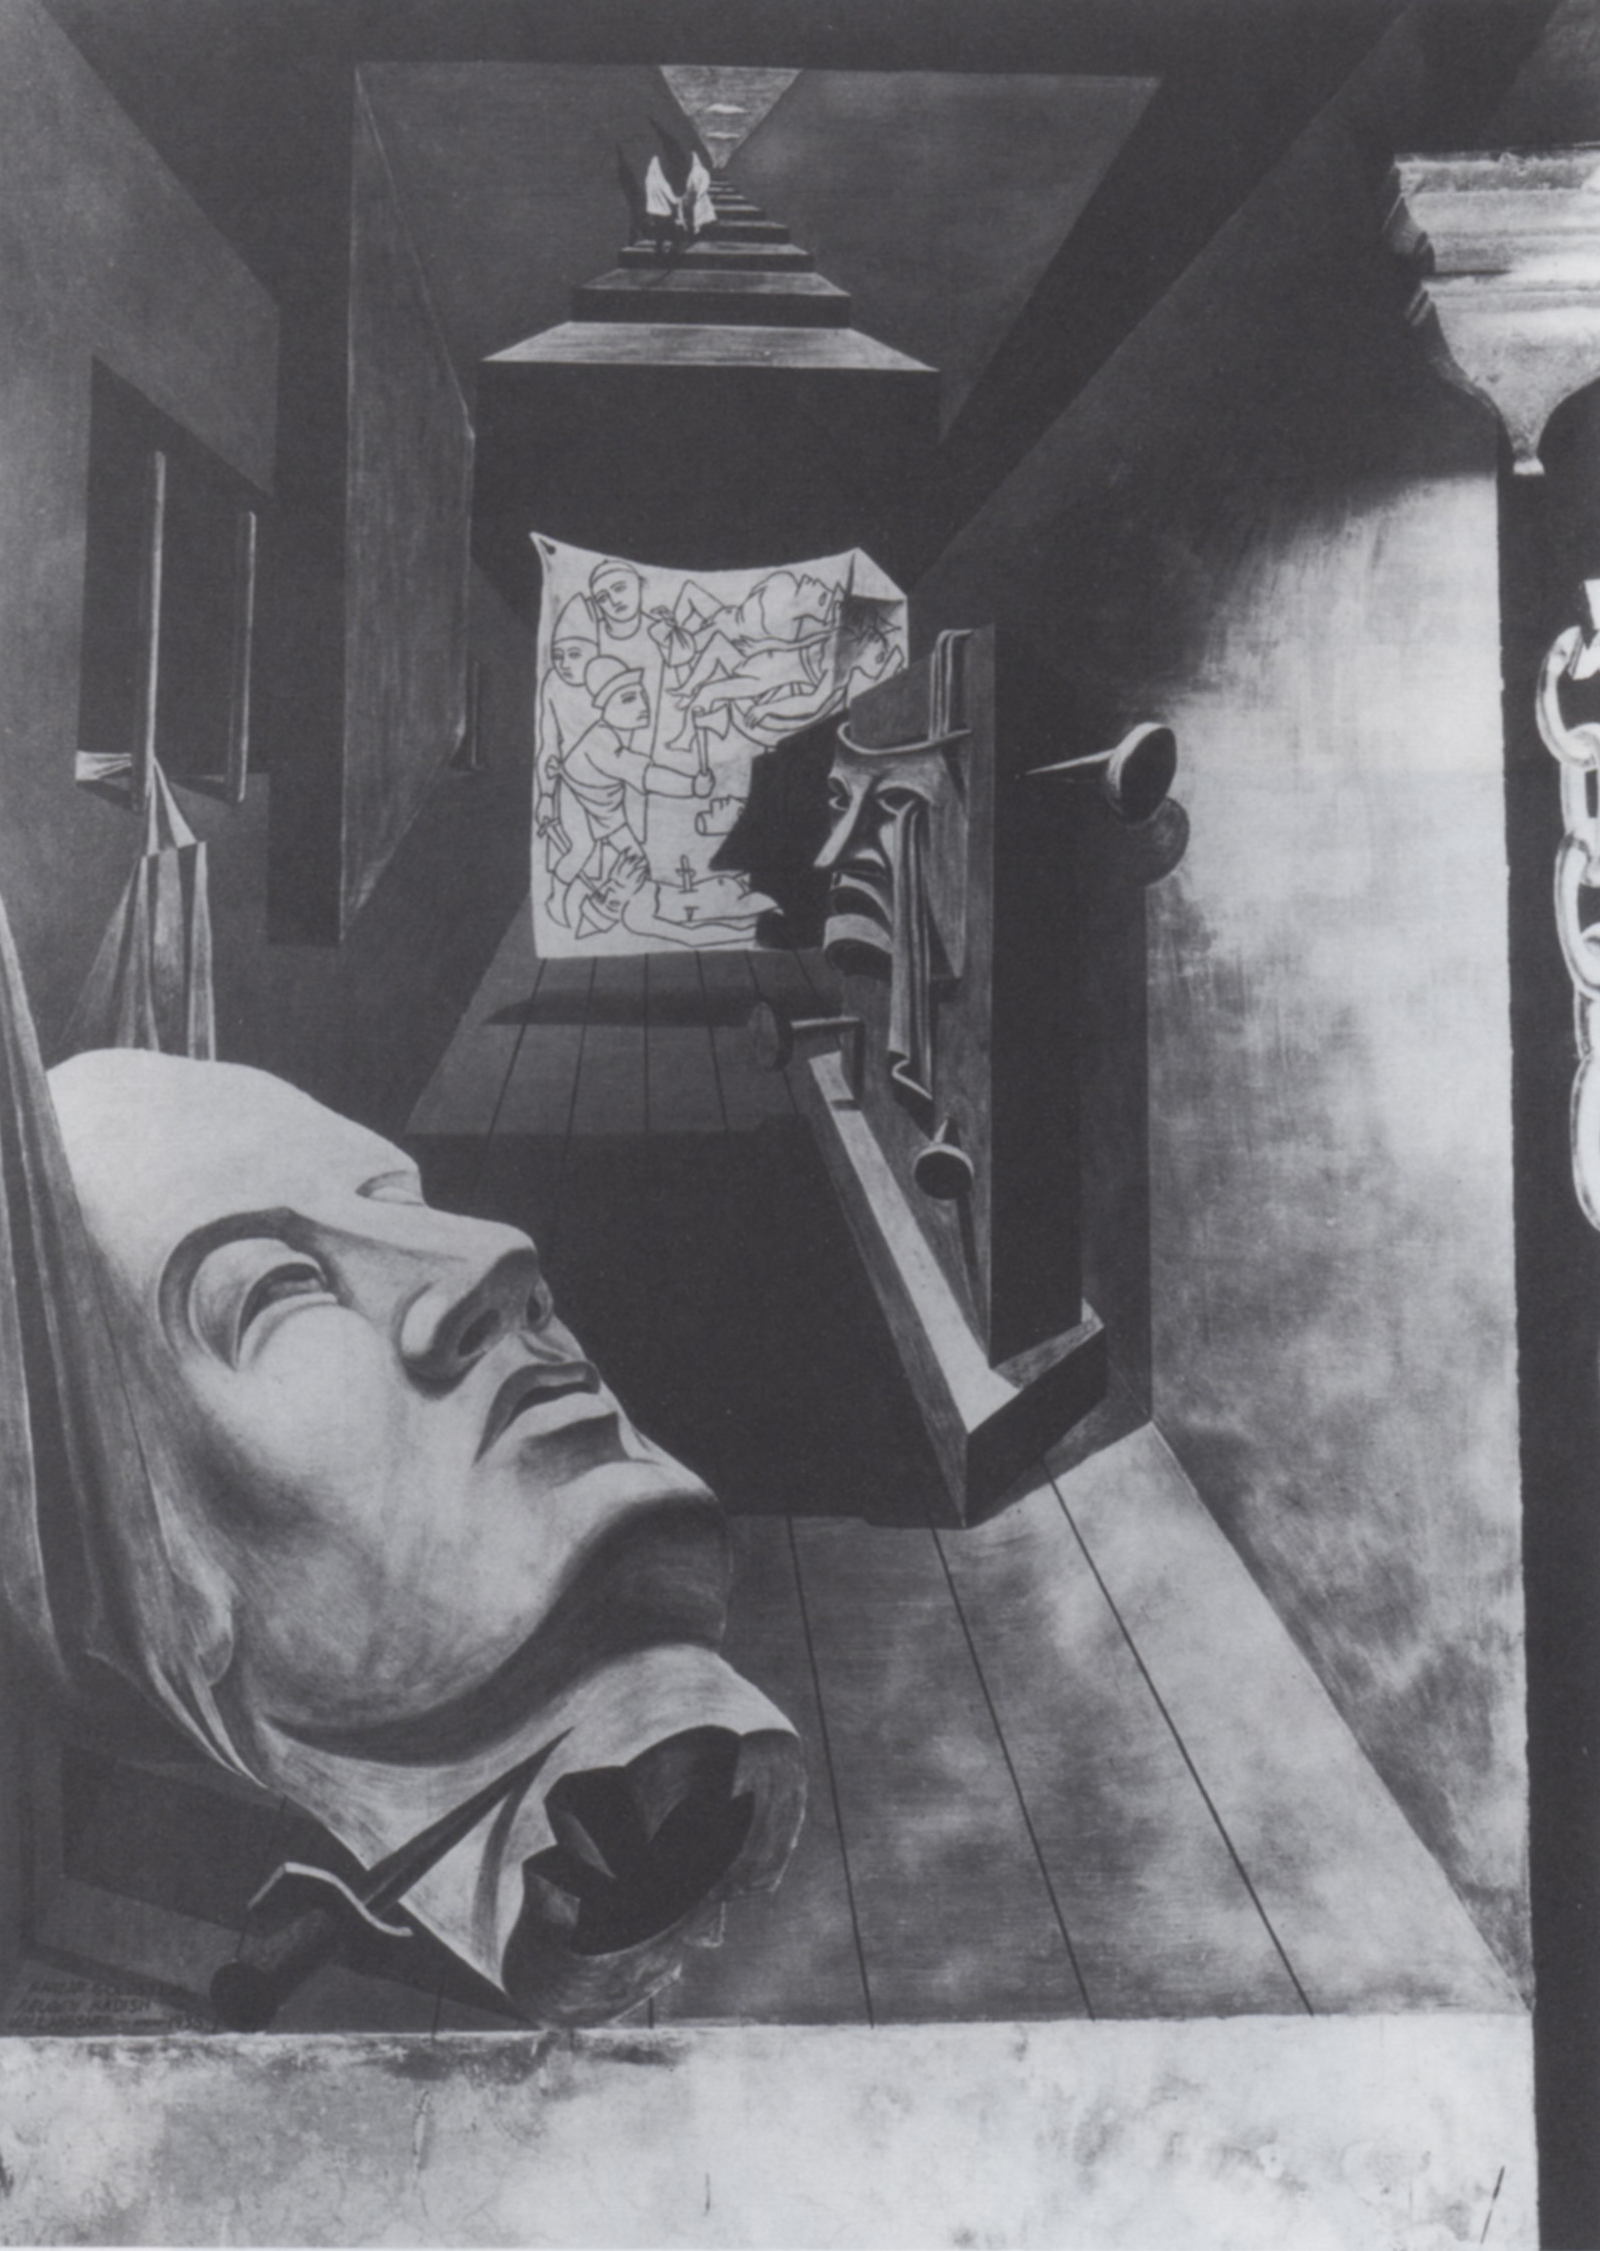 (fig. 20) Guston, Reuben Kadish (and Jules Langsner), Post-surrealist still life panel from The Struggle against Terrorism, 1934-35. Photo from the Reuben Kadish Papers, Archives of American Art, Smithsonian Institution, with permission of the Reuben Kadish Art Foundation